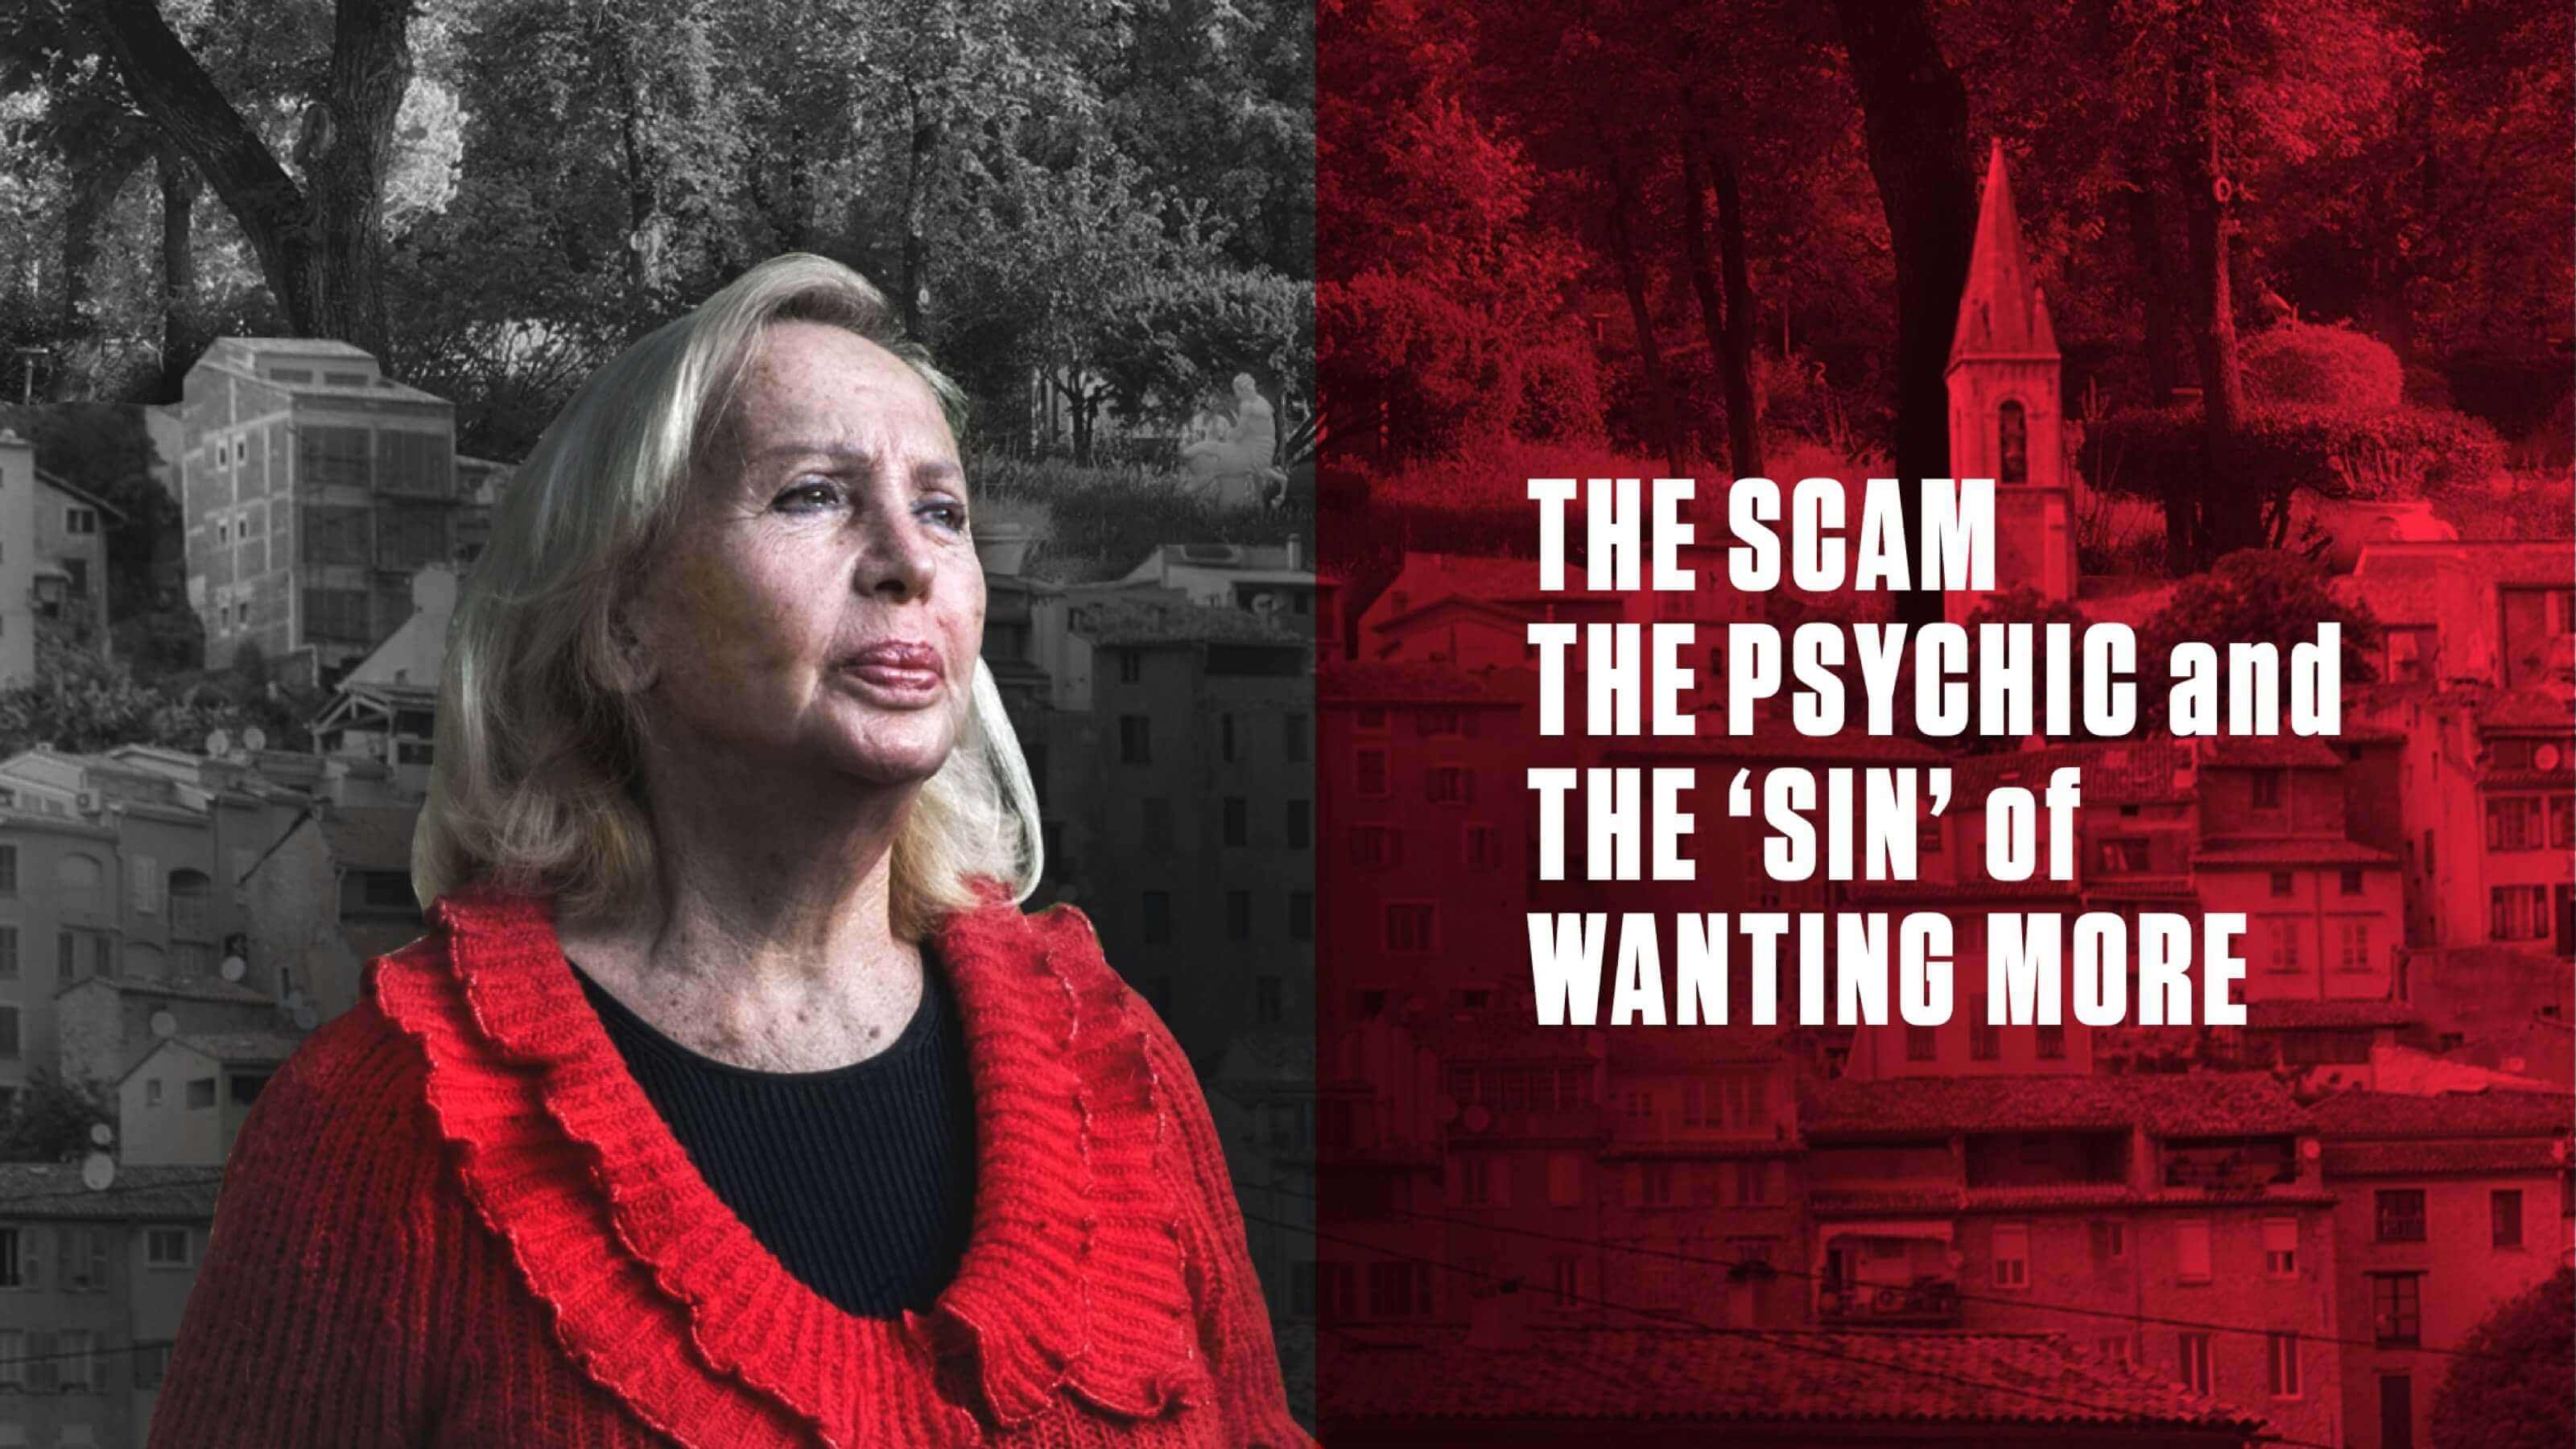 The scam, the psychic, and the sin of wanting more - CNN